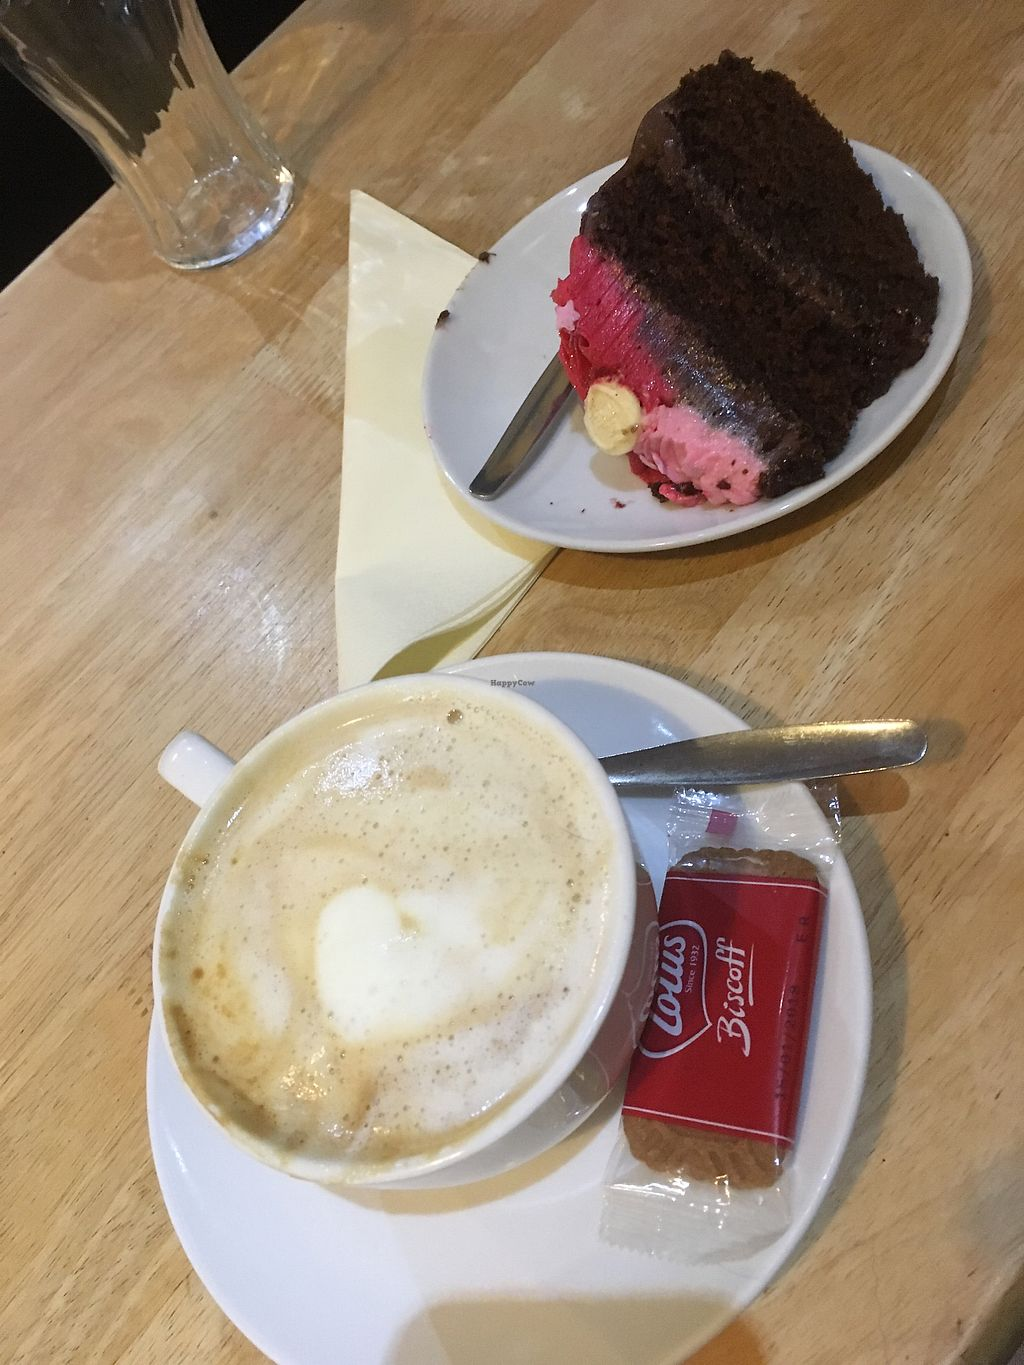 """Photo of PerryLicious Coffee and Cake Rooms  by <a href=""""/members/profile/Kwarmoth"""">Kwarmoth</a> <br/>chocolate fudge cake and latte  <br/> August 6, 2017  - <a href='/contact/abuse/image/73298/289604'>Report</a>"""